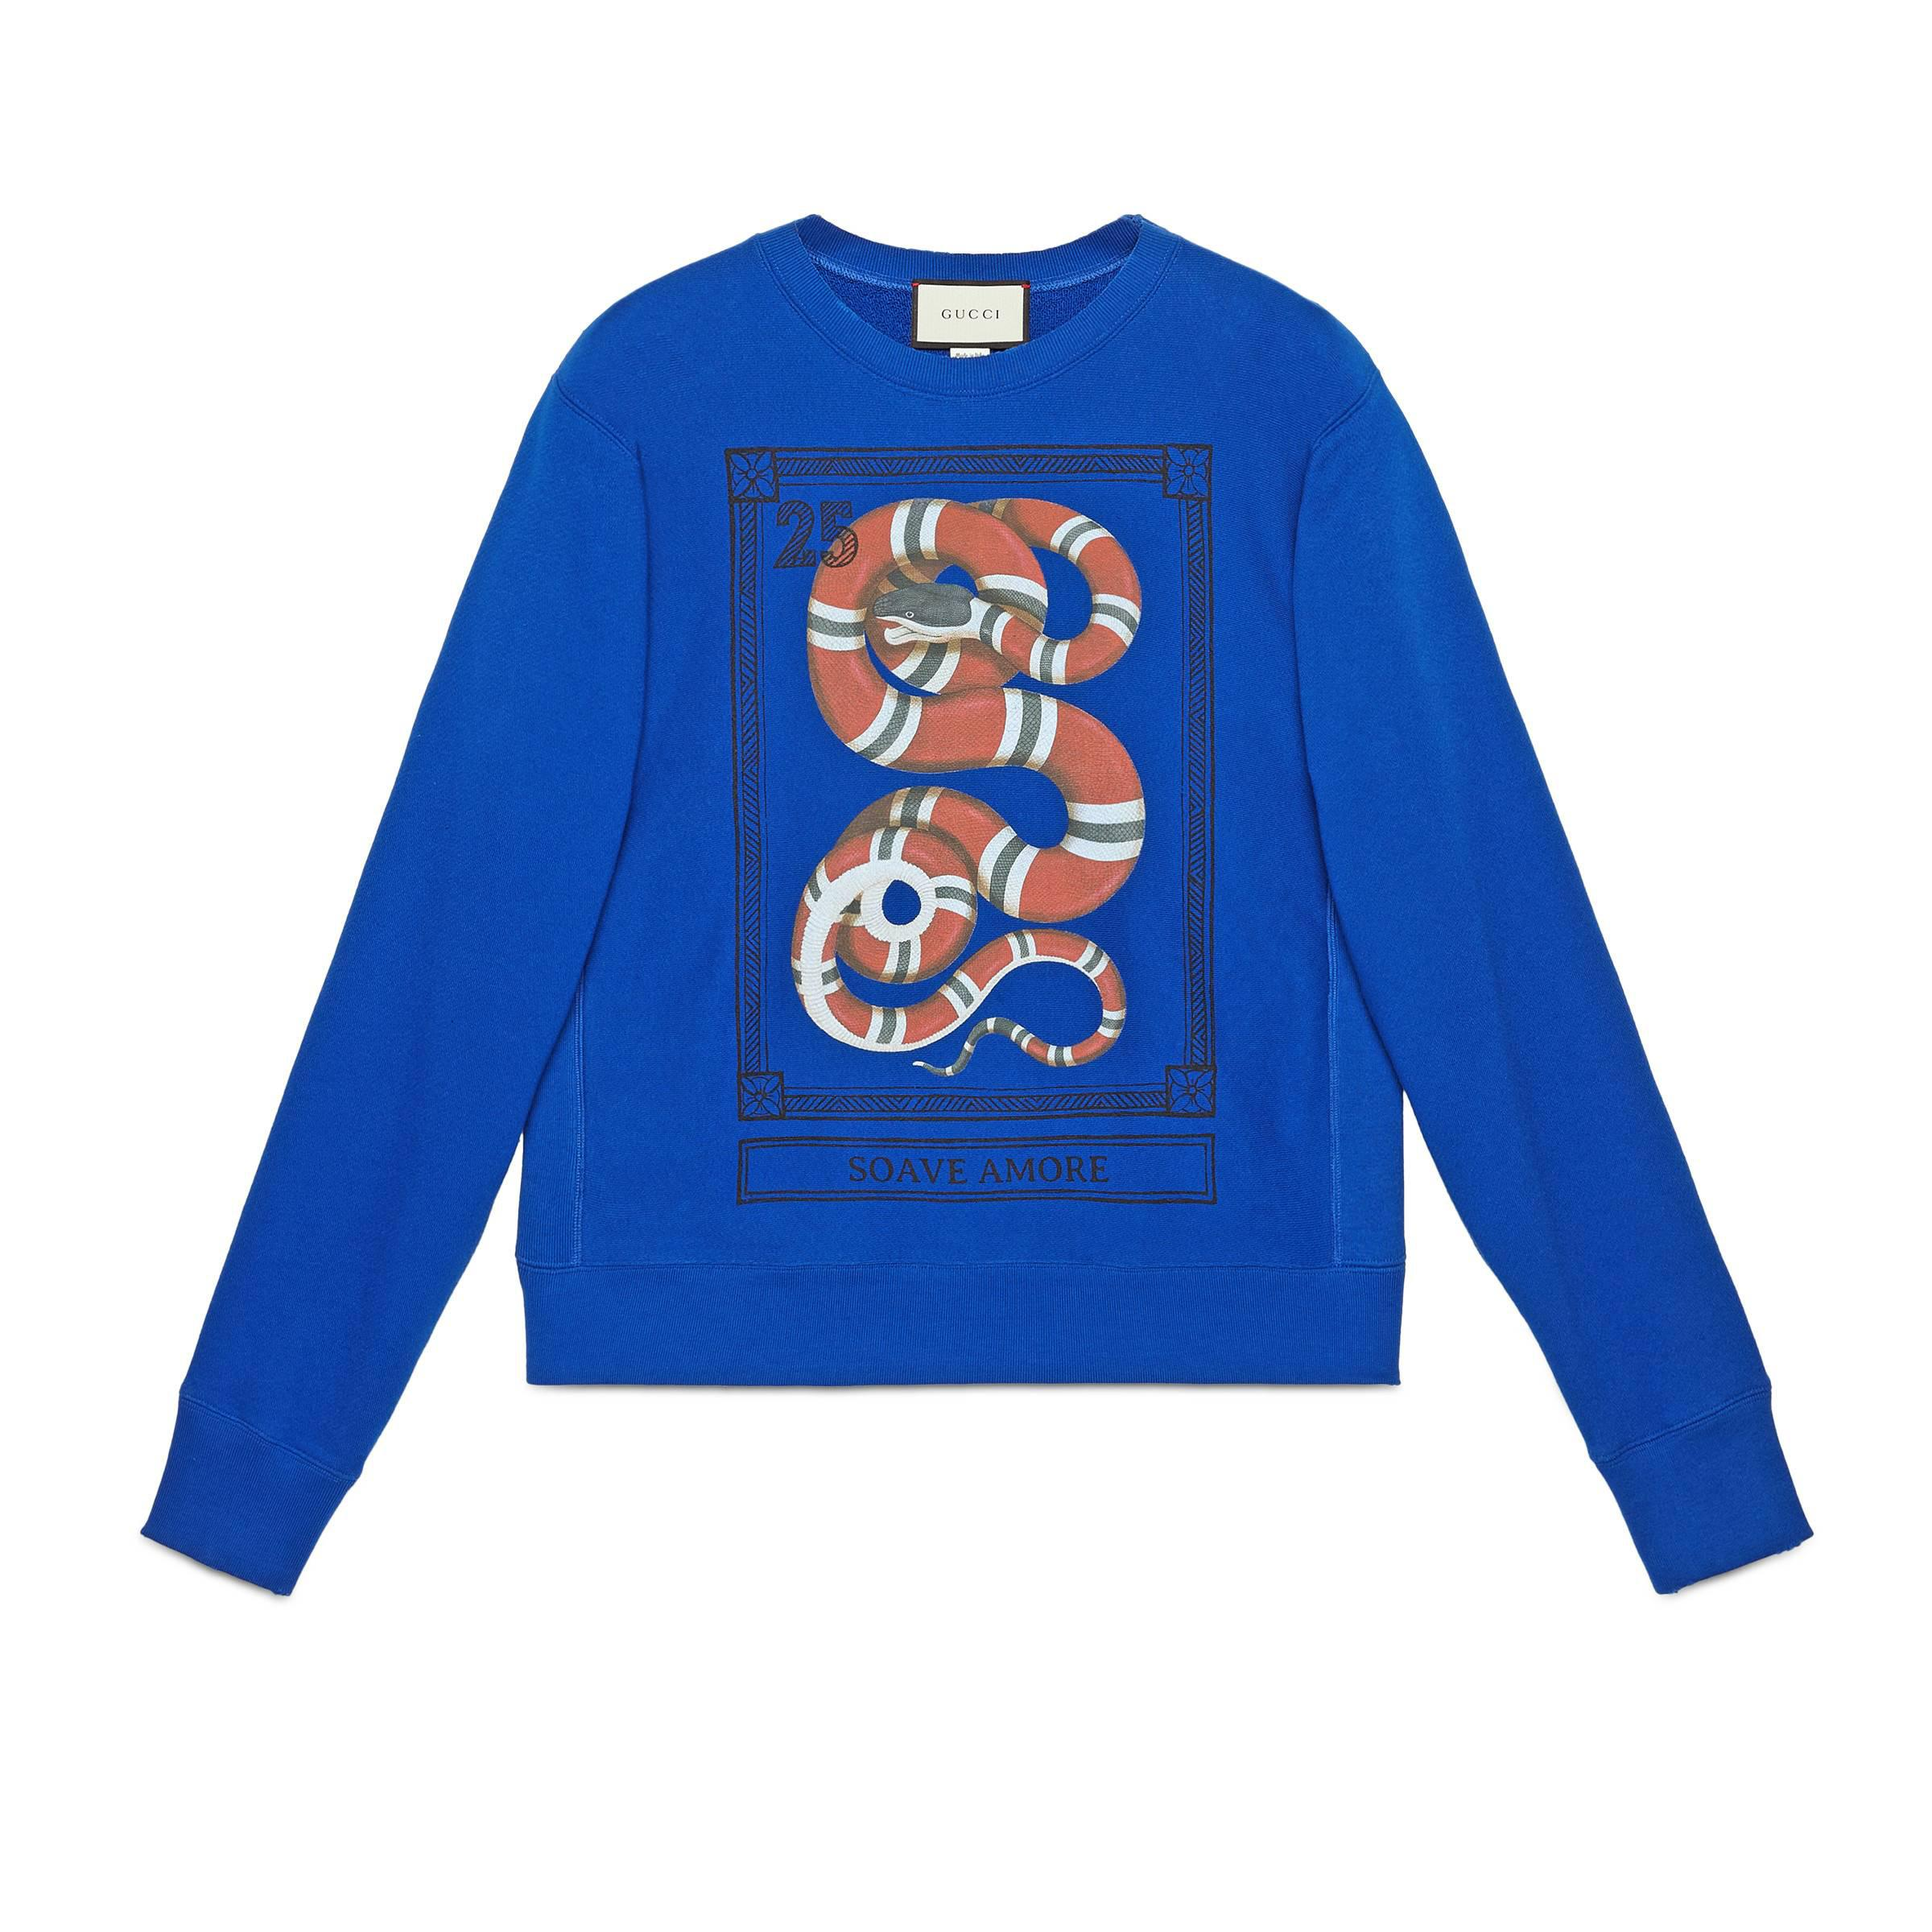 757c2acdf782a Gucci Cotton Sweatshirt With Kingsnake Print in Blue for Men - Lyst